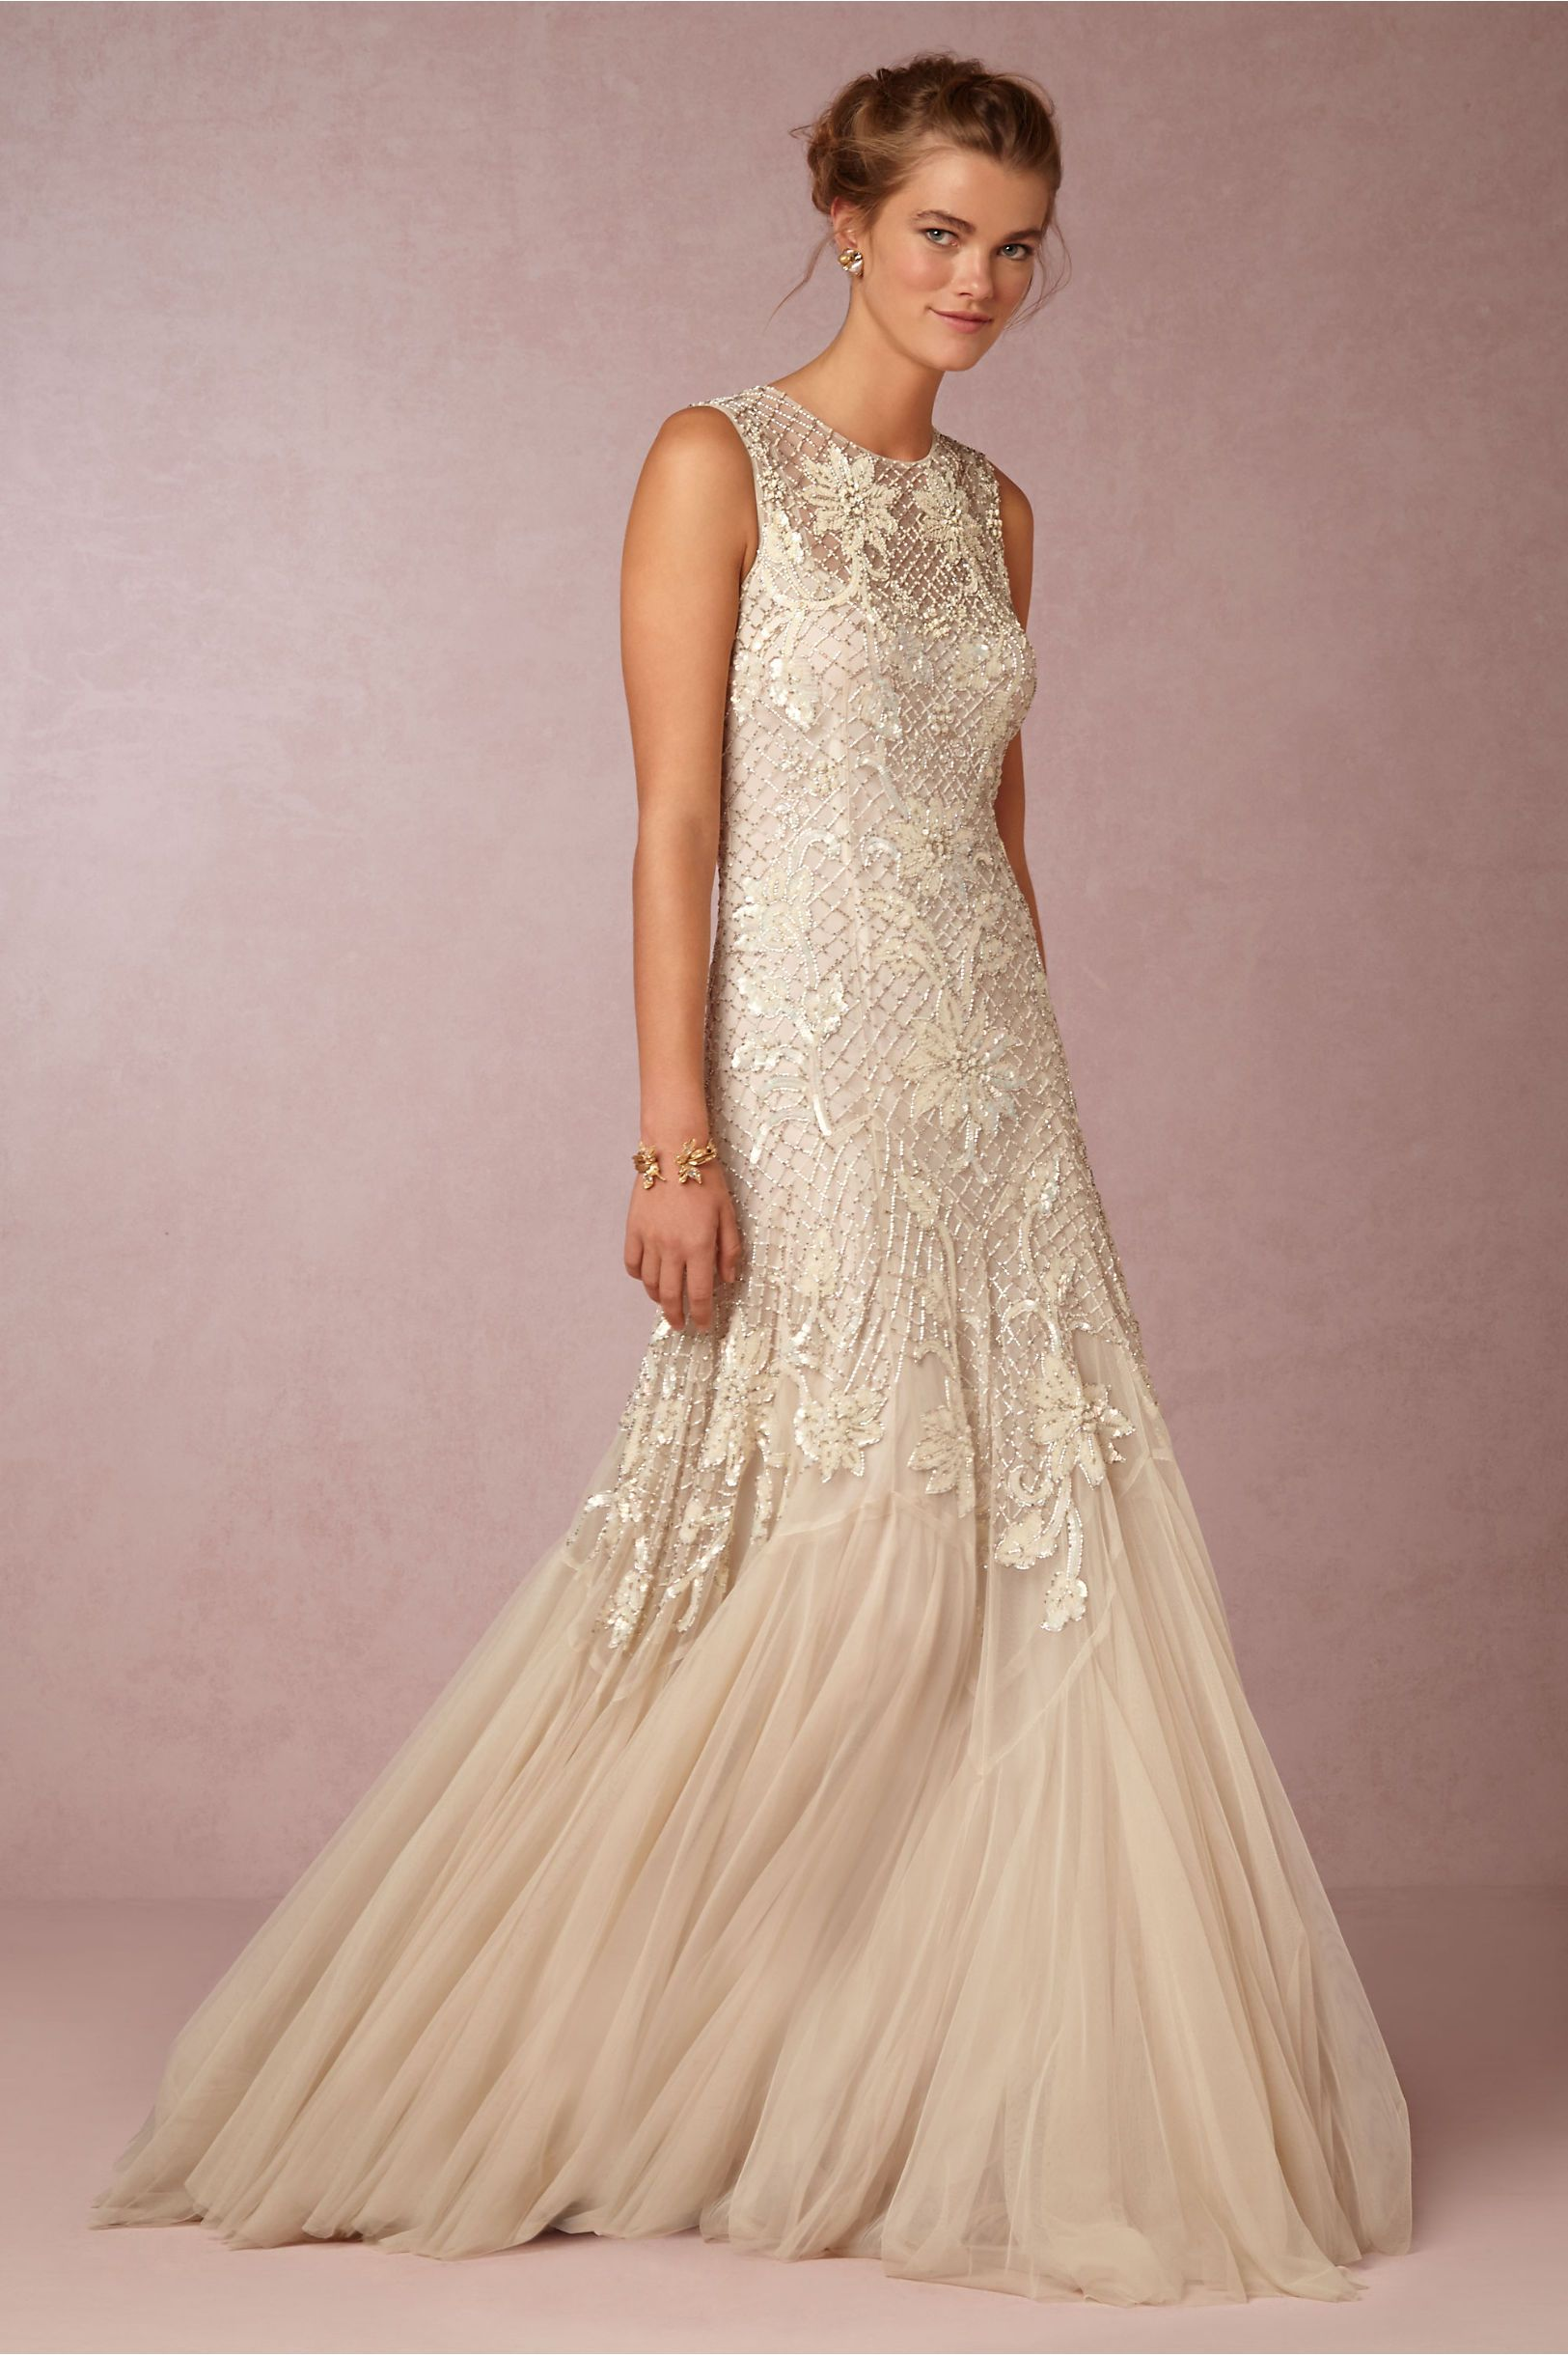 Pin by anastasia trahana on wedding dresses pinterest gowns